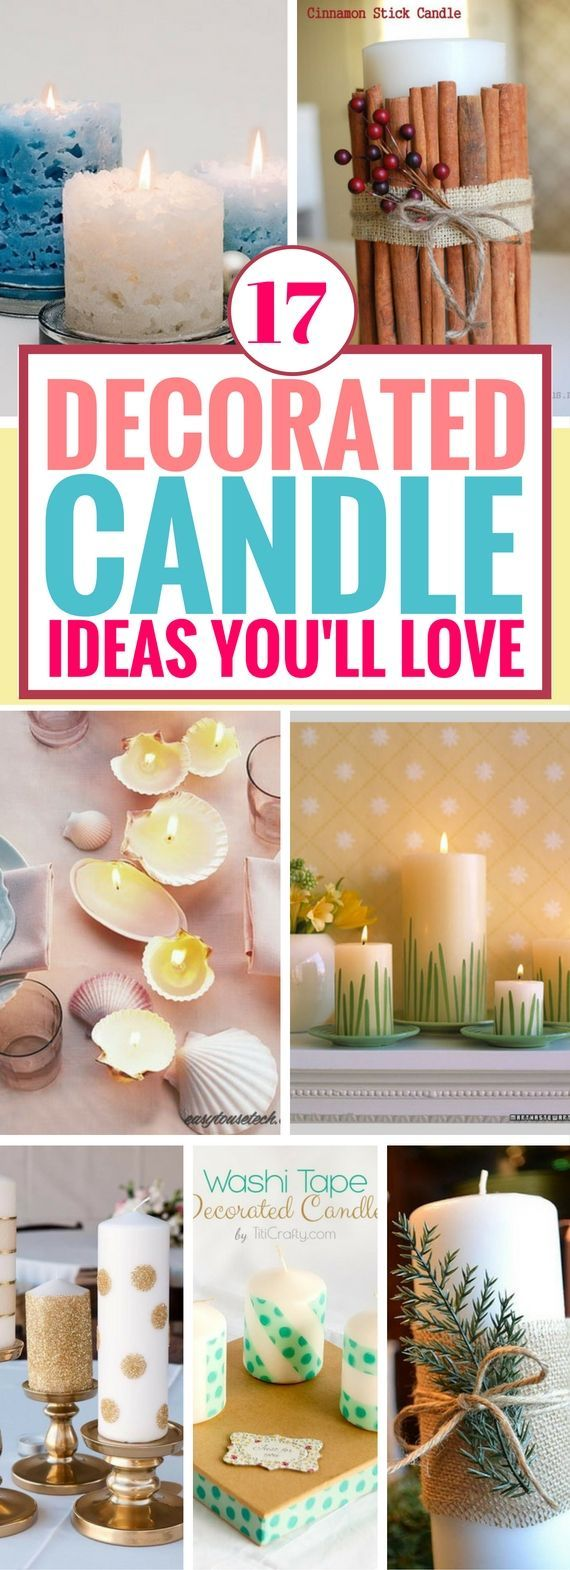 These Decorated Candle Ideas are so awesome. Fun and unique ways to decorate candles from the outside. I wish I found these diy candles way before. They make perfect gifts for someone!